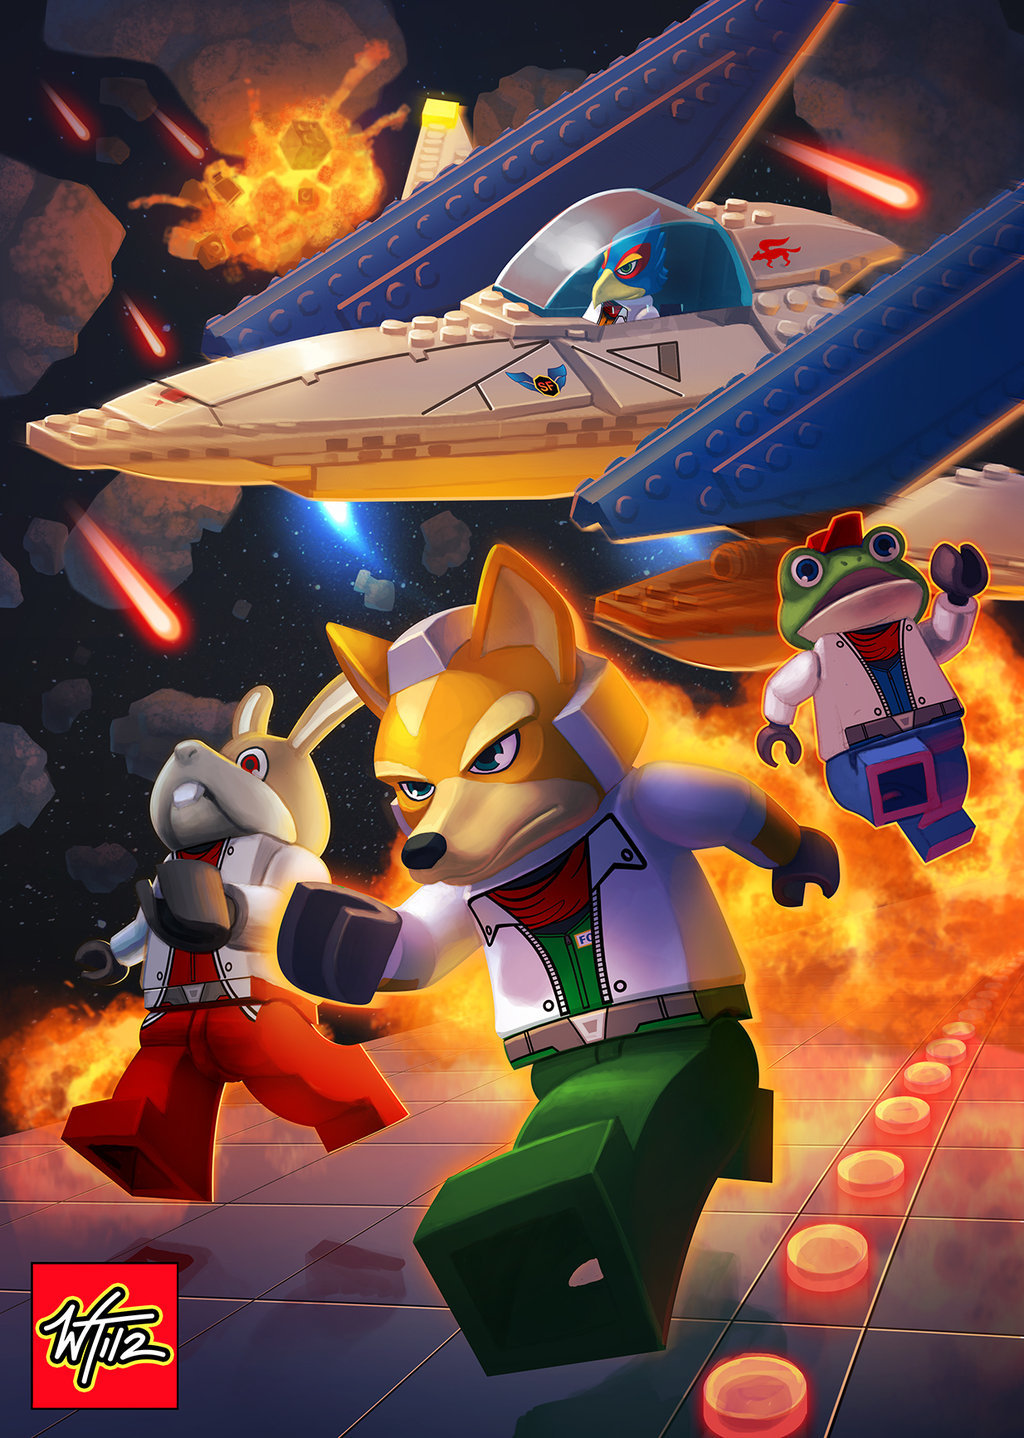 Lego Star Fox by Wes Talbott. Great follow-up to his similar Lego treatment for The Legend of Zelda: Ocarina of Time a few months back. Everybody's jettin' out of there so fast, no one noticed Slippy Toad behind them, getting blasted. They might find his cap and blocky legs floating with all the other debris later. BUY Star Fox 64 3D, Star Fox Command